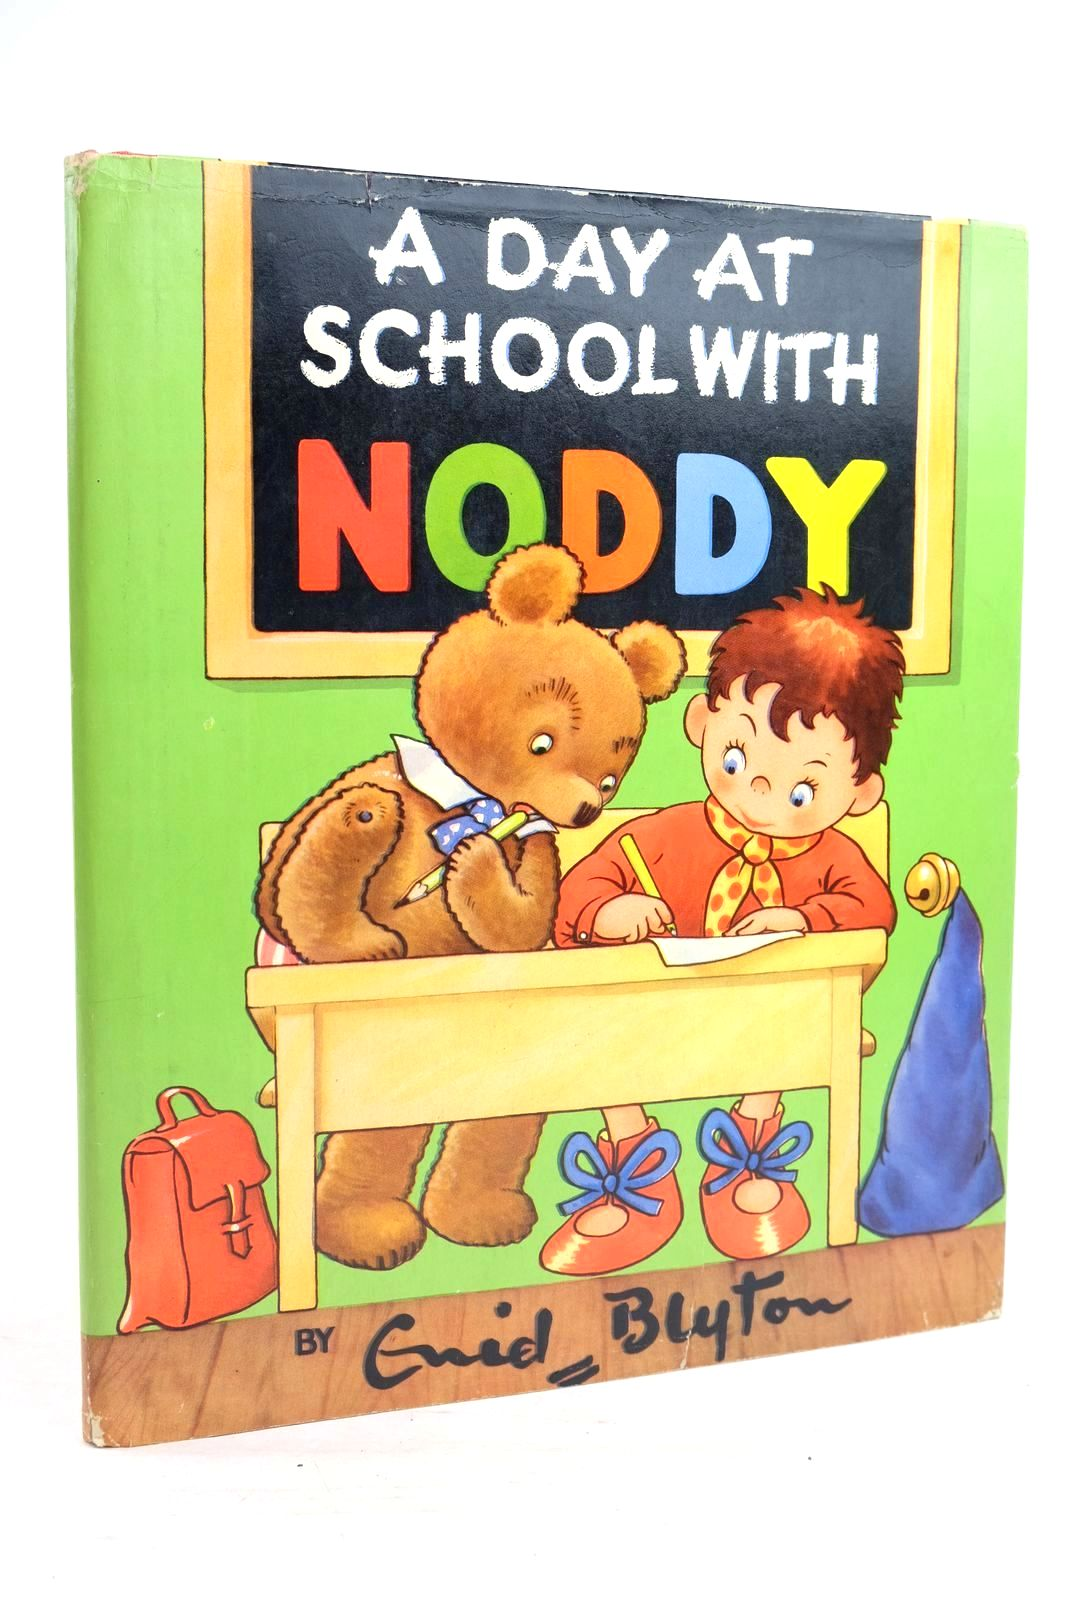 Photo of A DAY AT SCHOOL WITH NODDY written by Blyton, Enid published by Sampson Low, Marston & Co. Ltd., The Richards Press Ltd. (STOCK CODE: 1320049)  for sale by Stella & Rose's Books